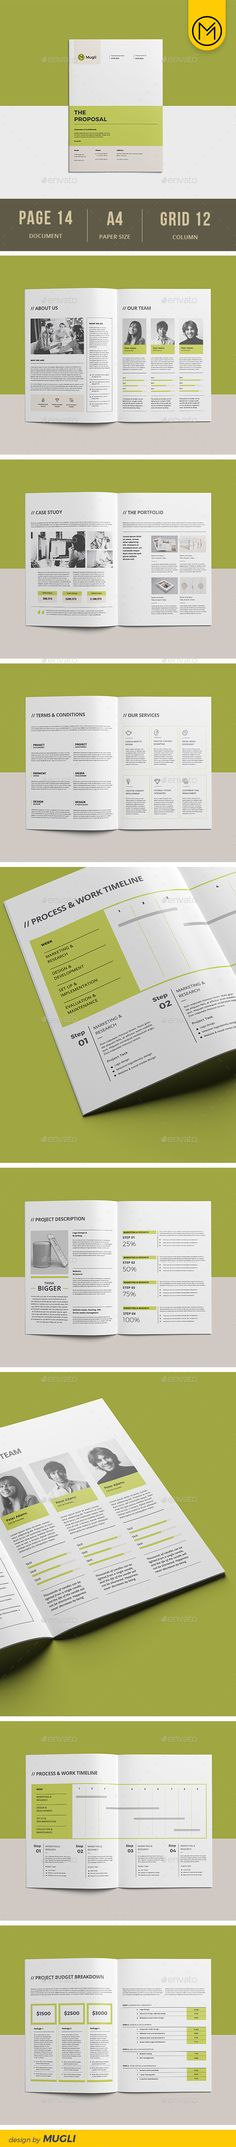 Sleman Clean Proposal Template Pinterest